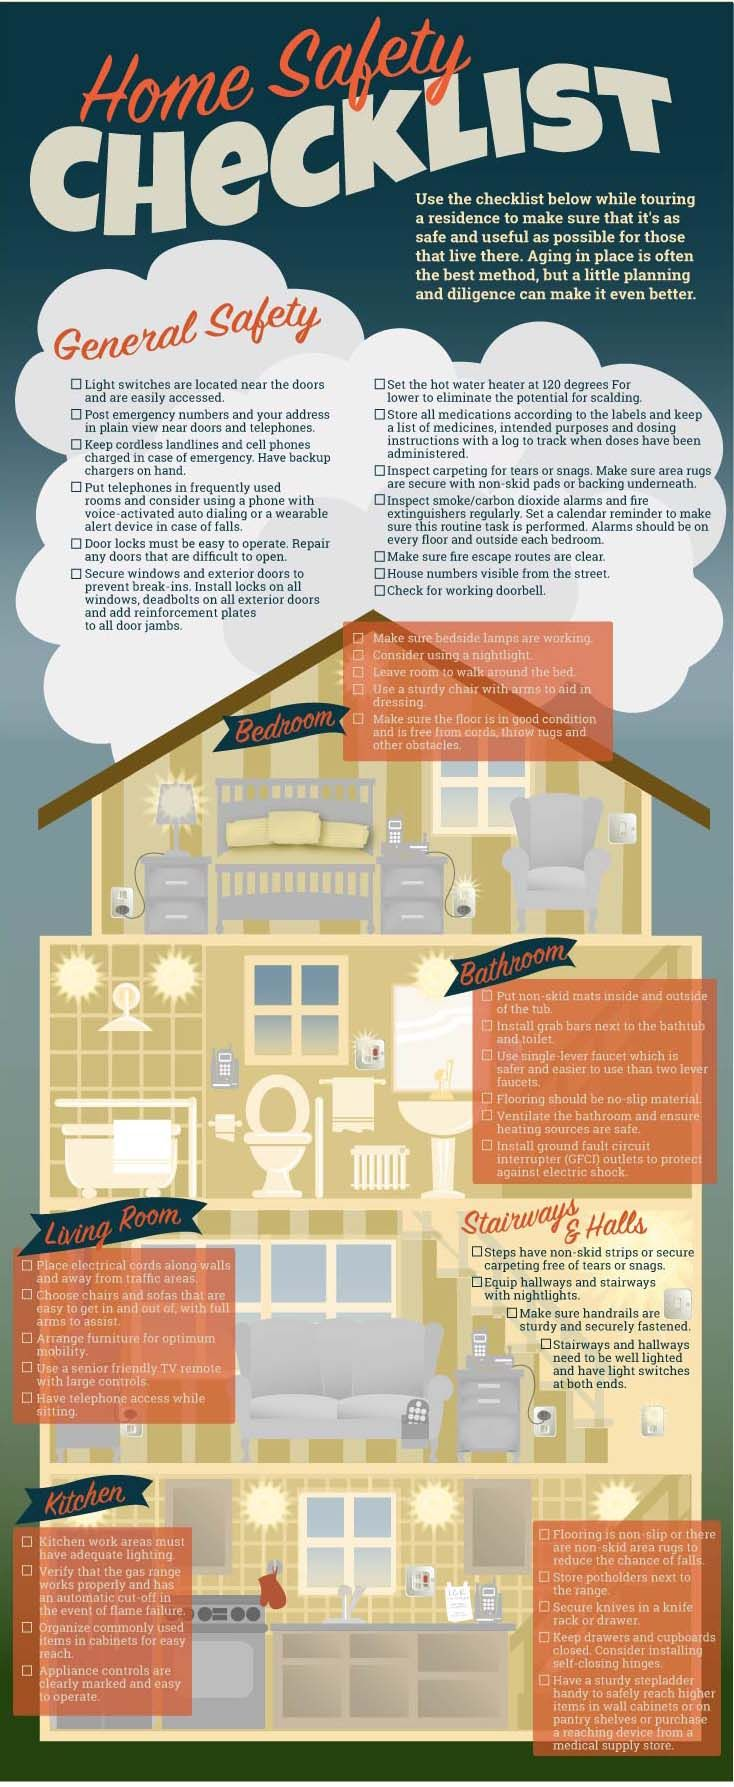 Download The Home Safety Checklist Home safety checklist